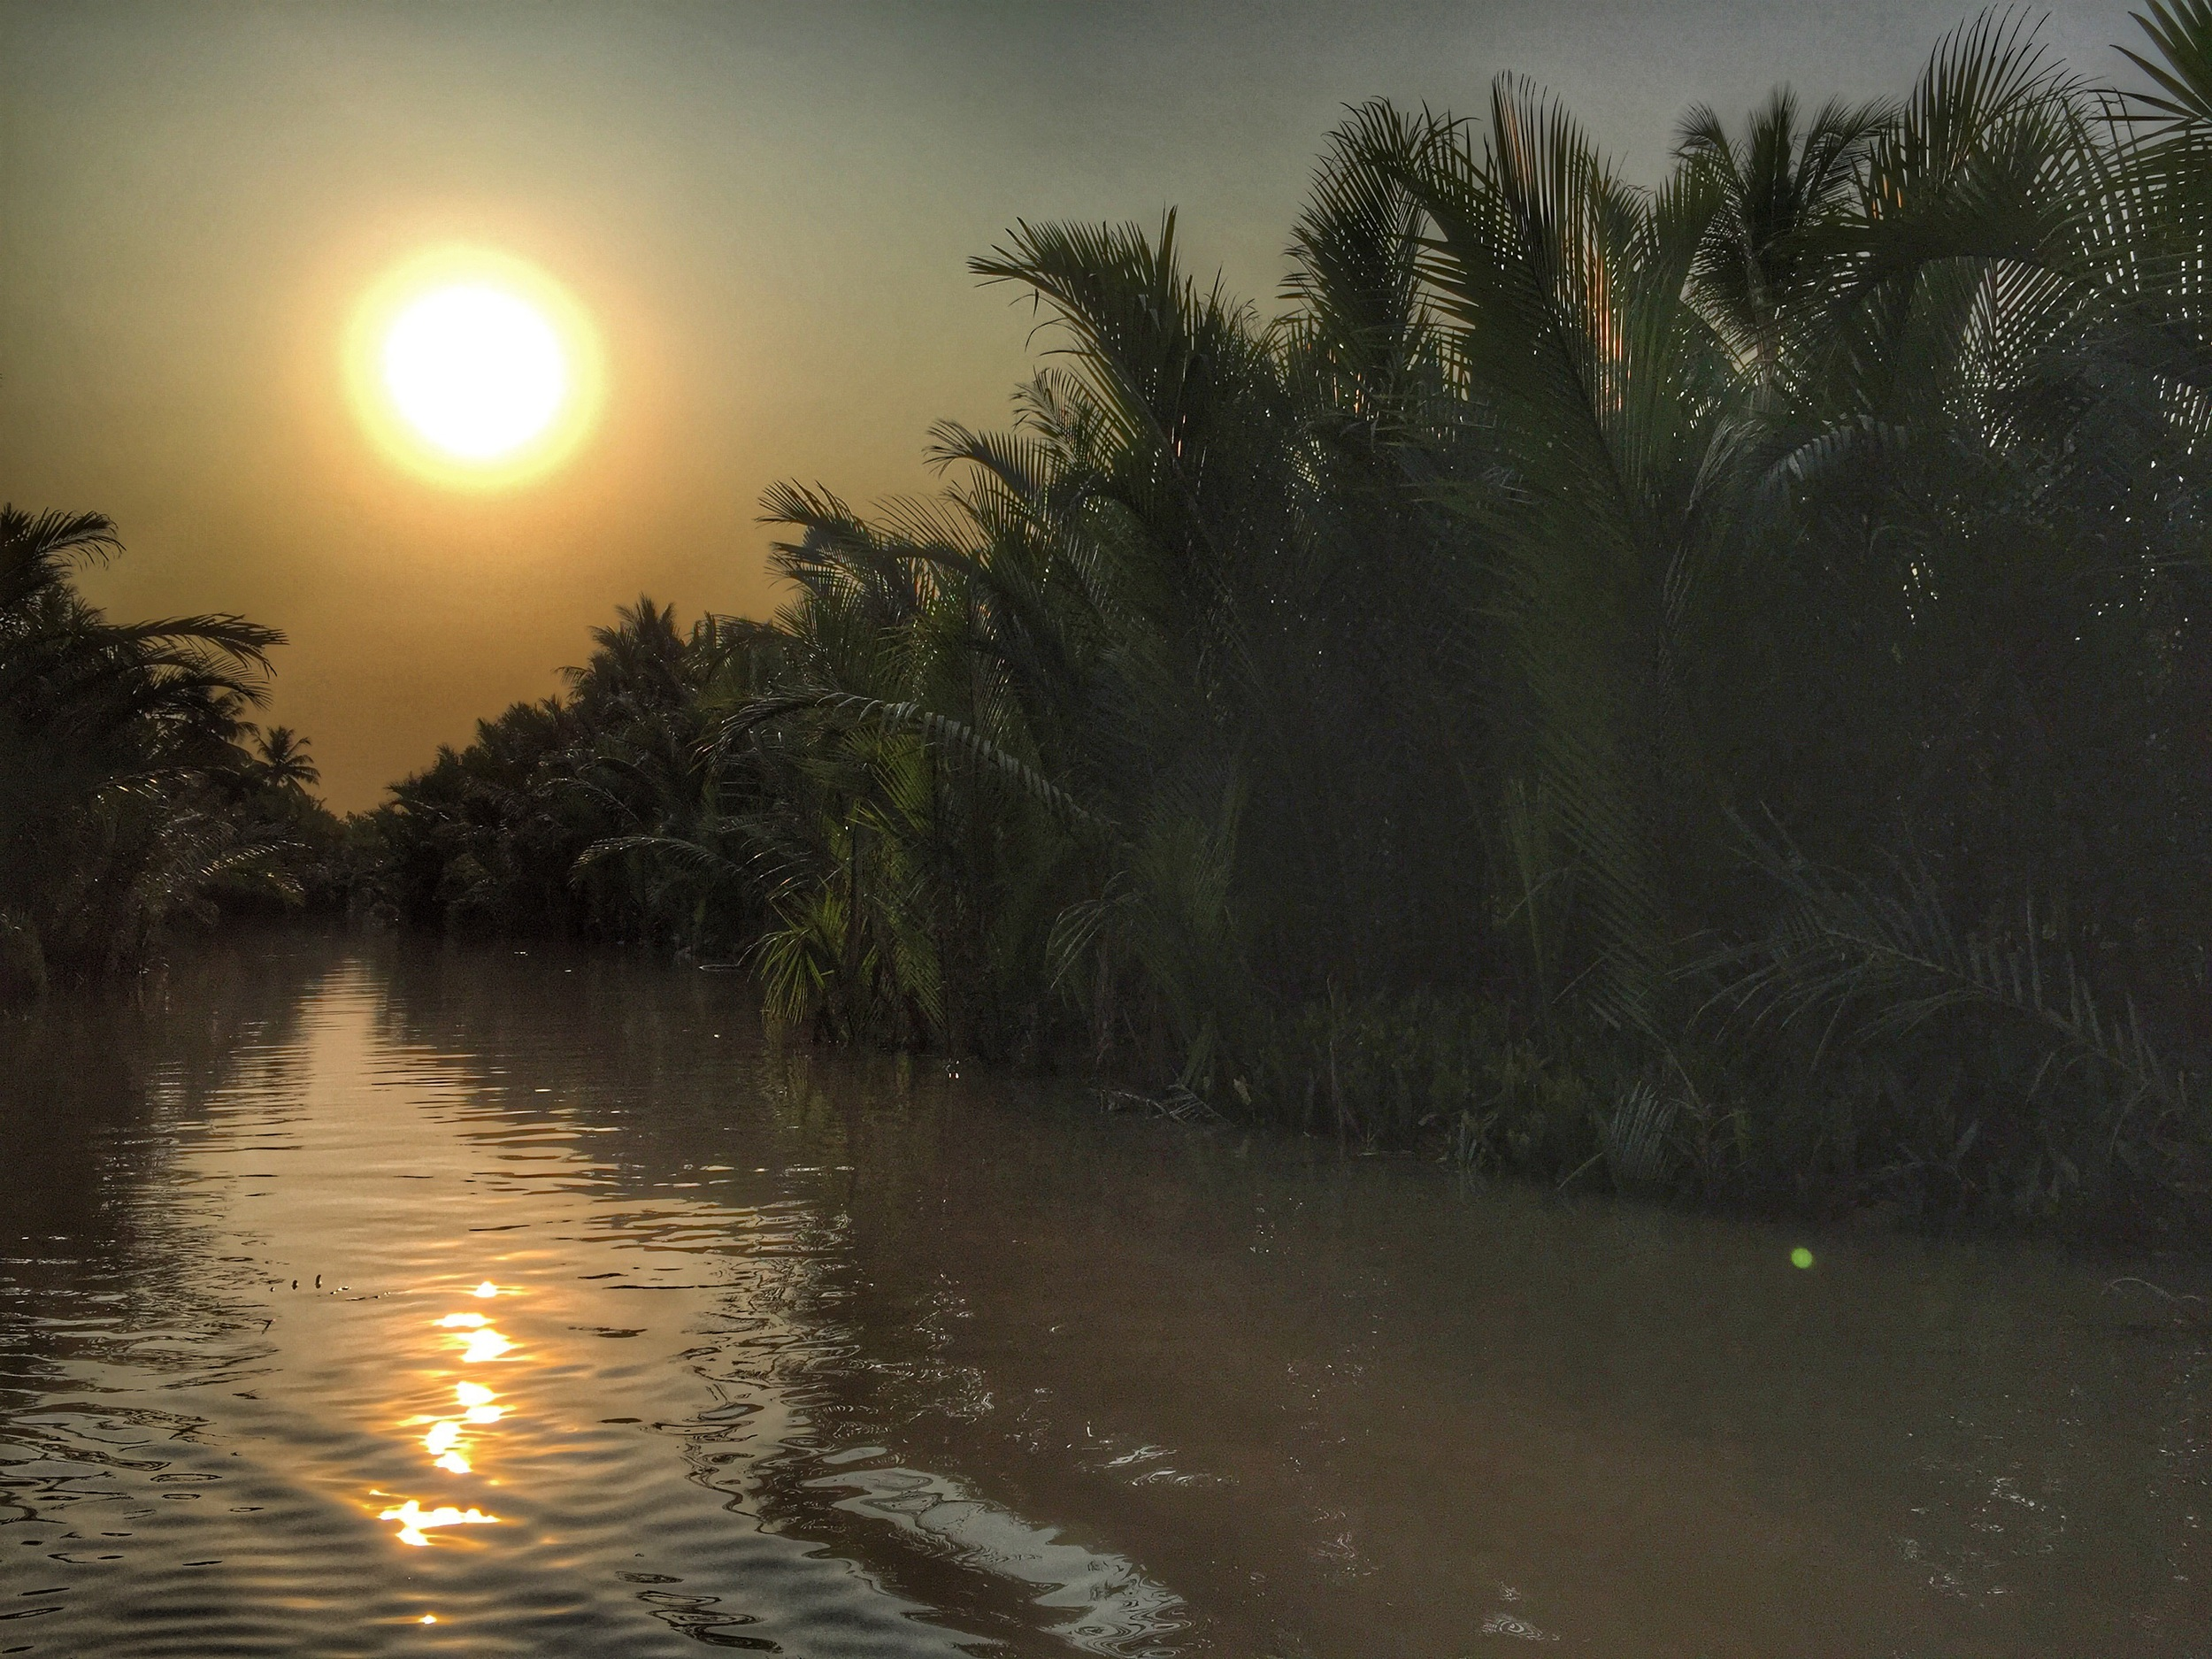 Sunset on the Mekong delta.